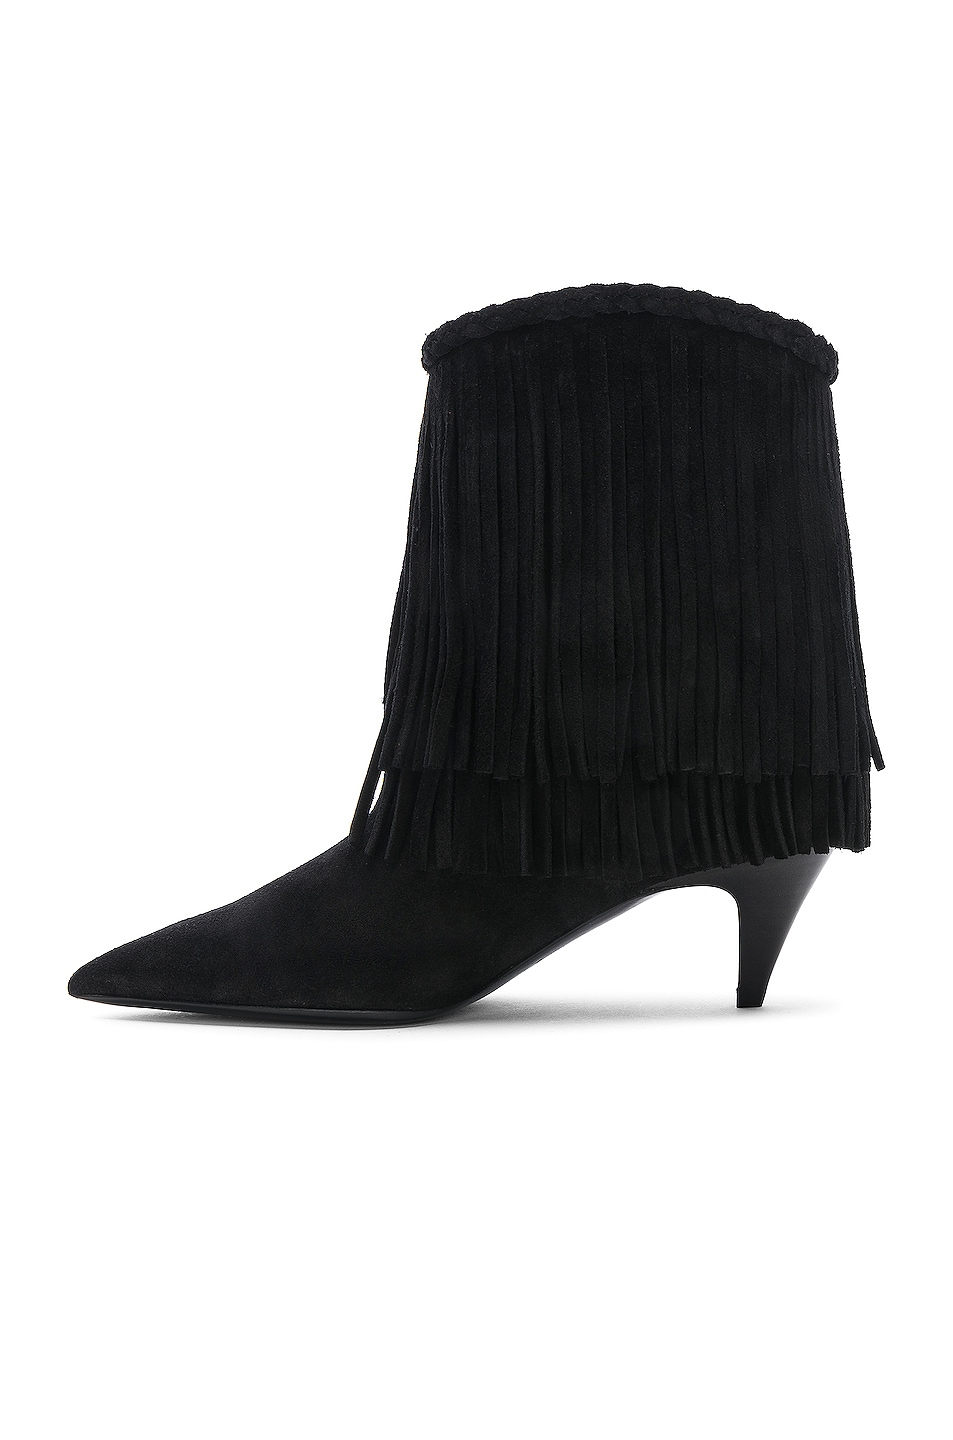 Image 5 of Saint Laurent Charlotte Fringe Booties in Black